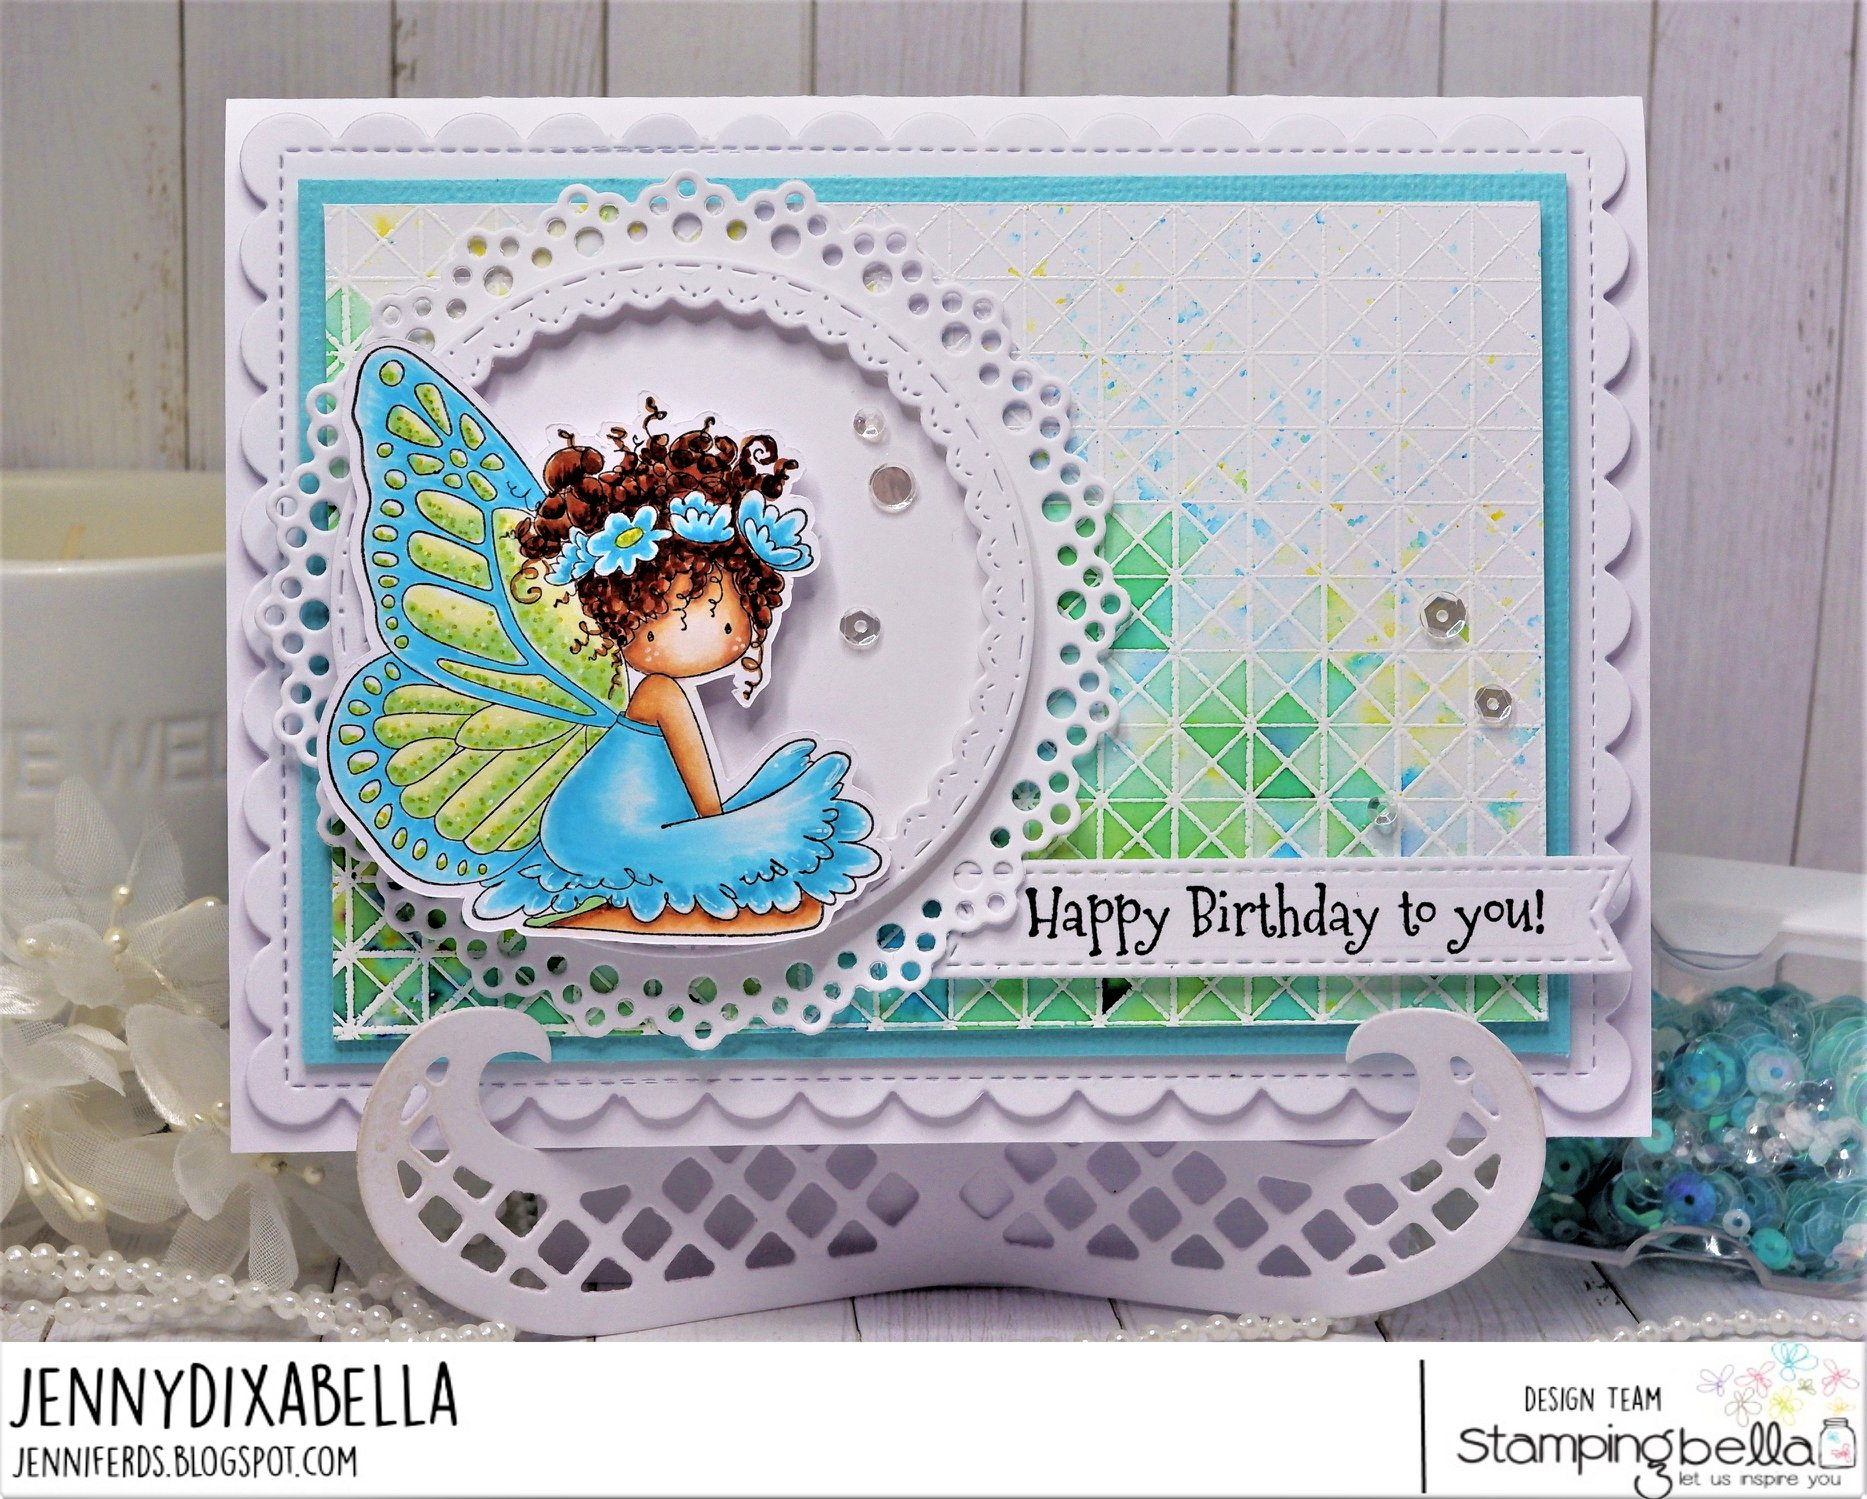 www.stampingbella.com: rubber stamp used: TINY TOWNIE BUTTERFLY GIRL BESS. card by Jenny Dix